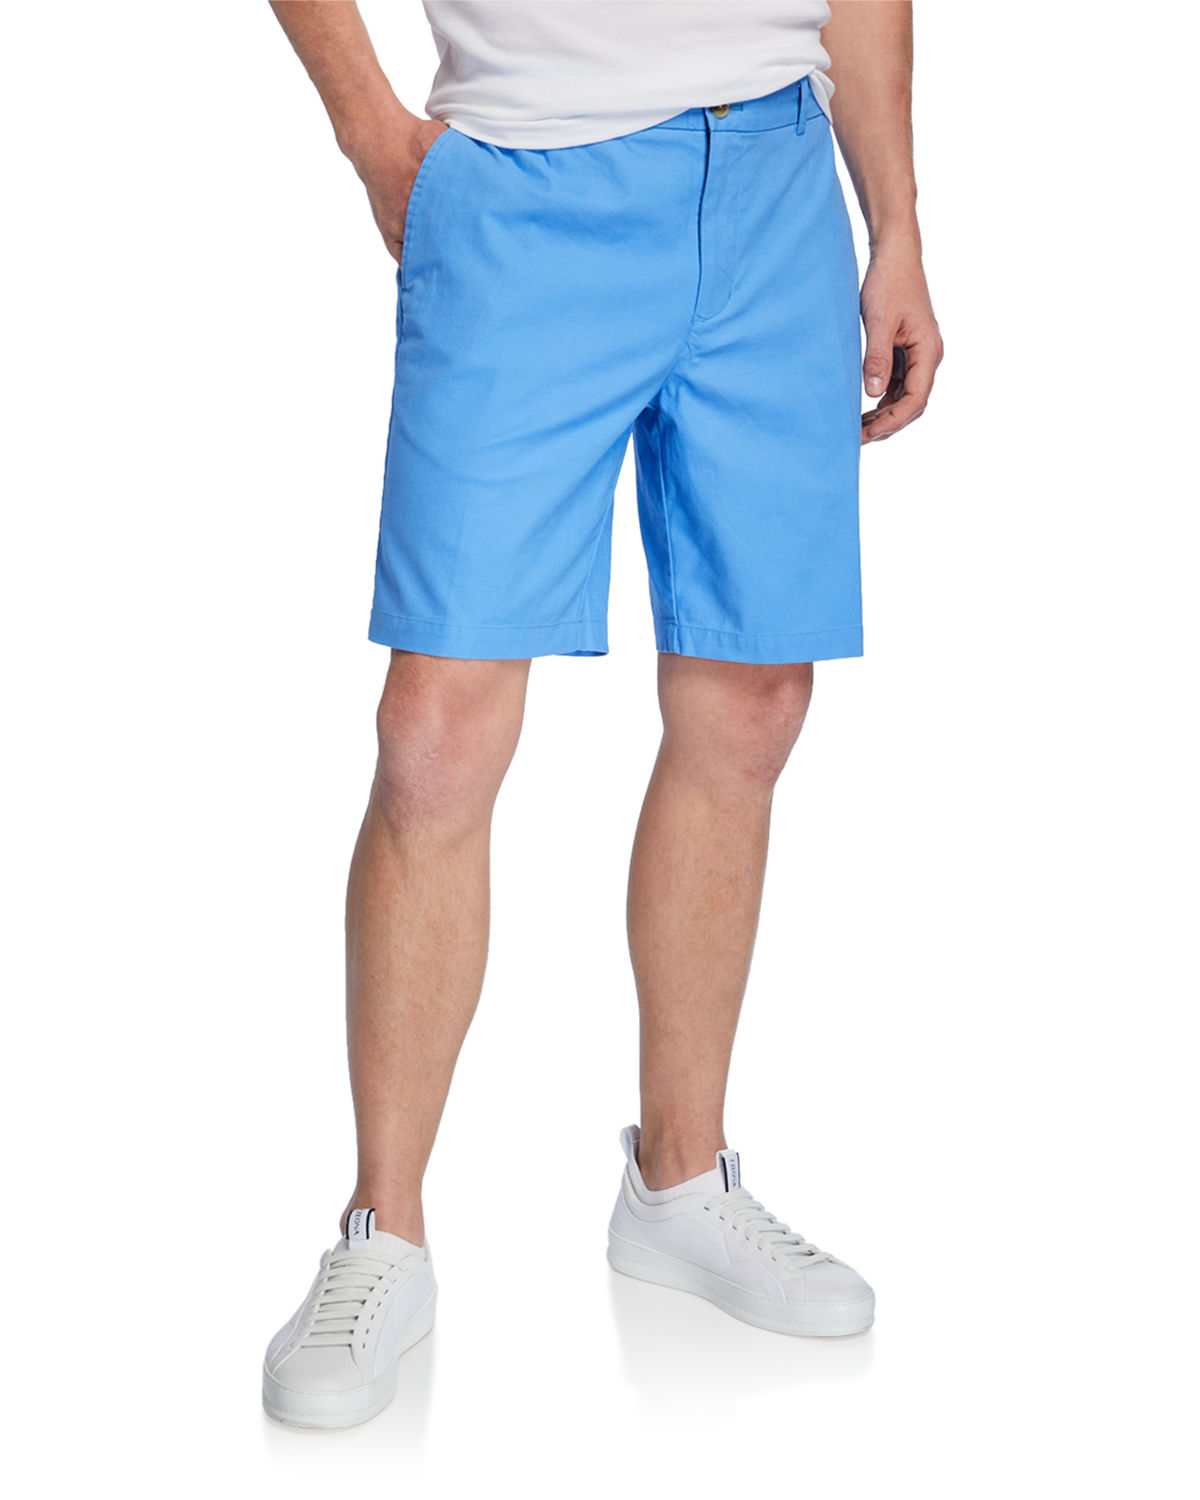 Tailorbyrd Shorts MEN'S FLAT-FRONT SHORTS